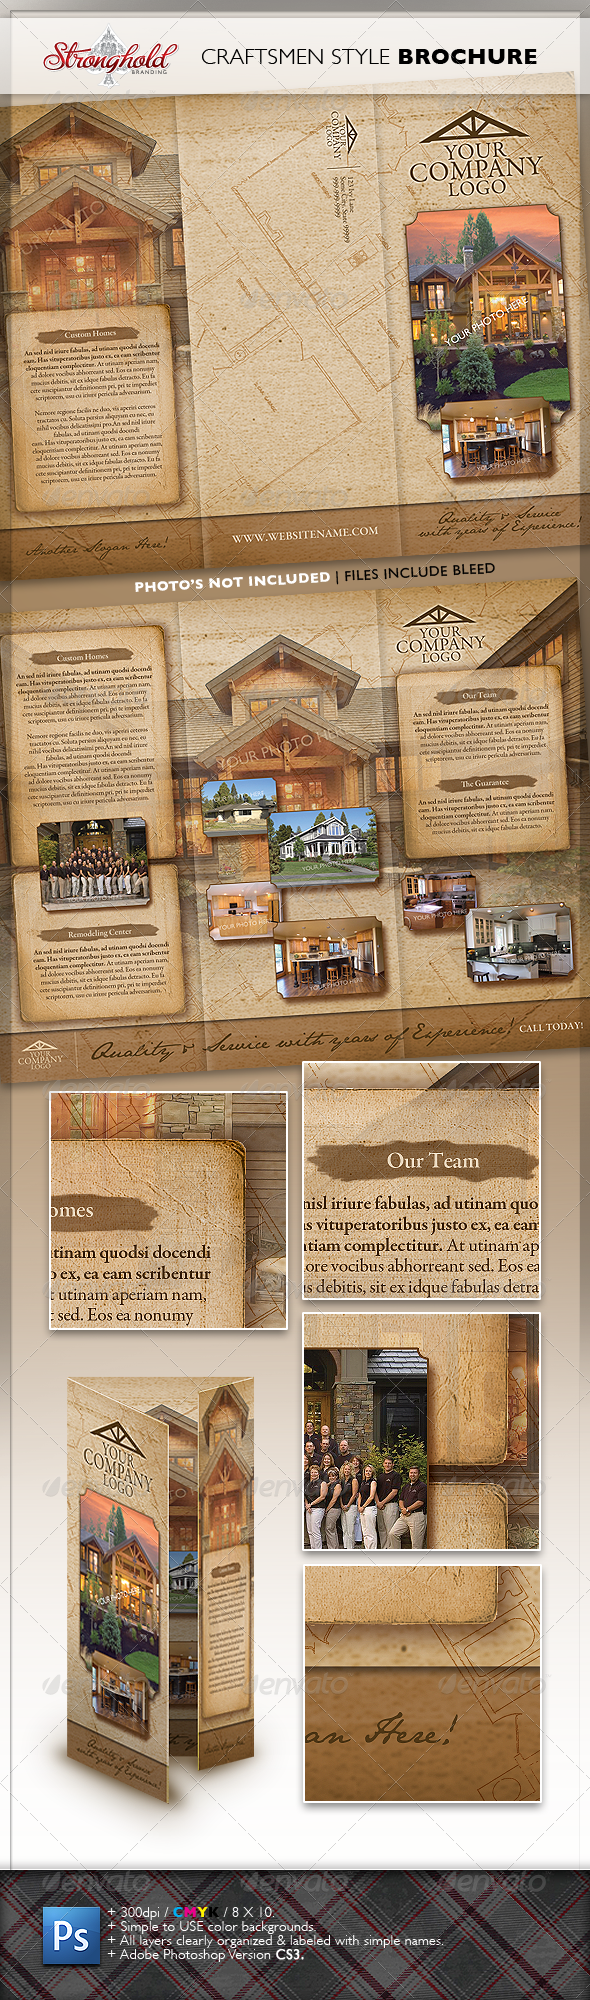 Vintage Craftsmen Style Brochure - Corporate Brochures